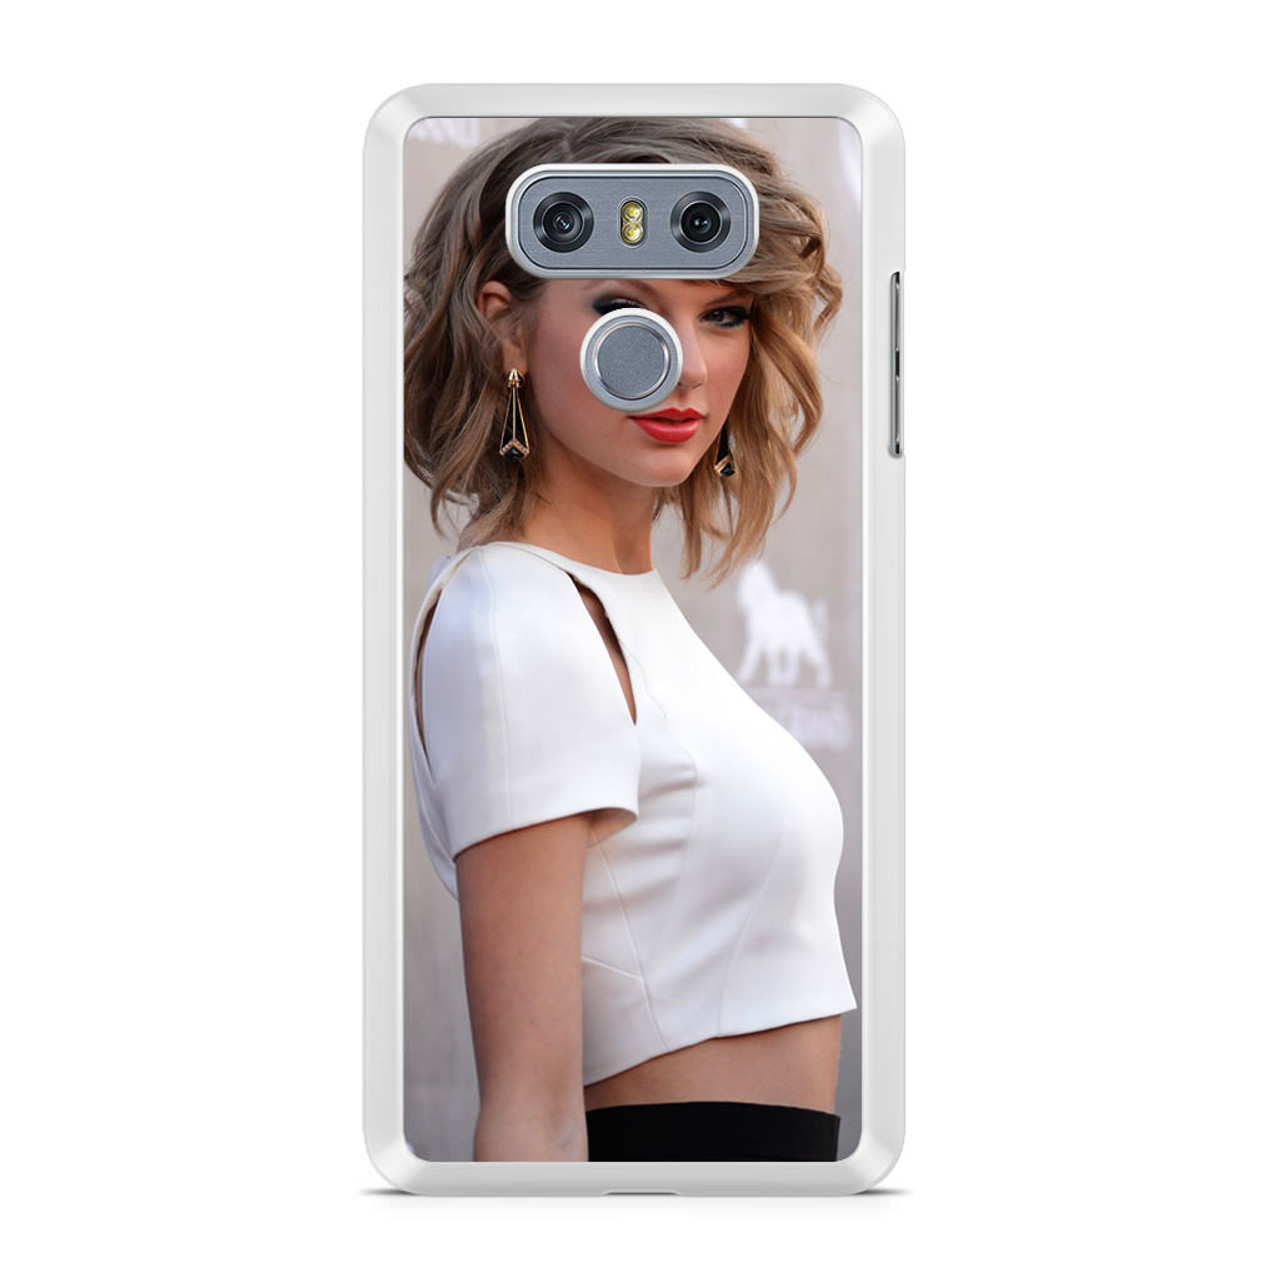 Taylor Swift 1989 Skyline iphone case